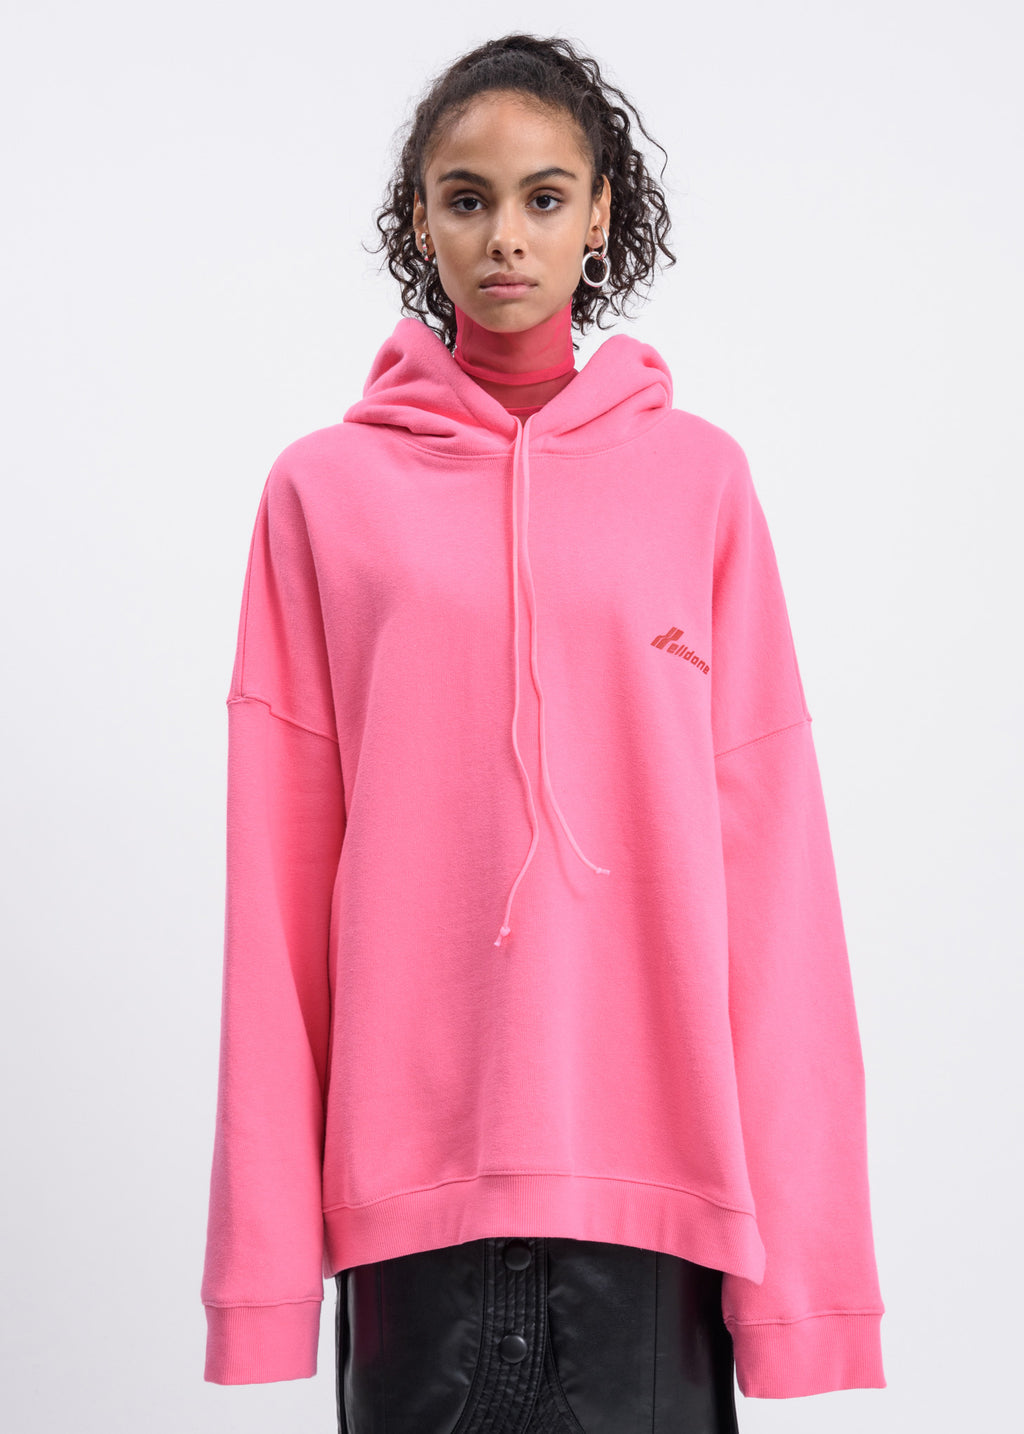 Pink Round Cut Out Hoodie